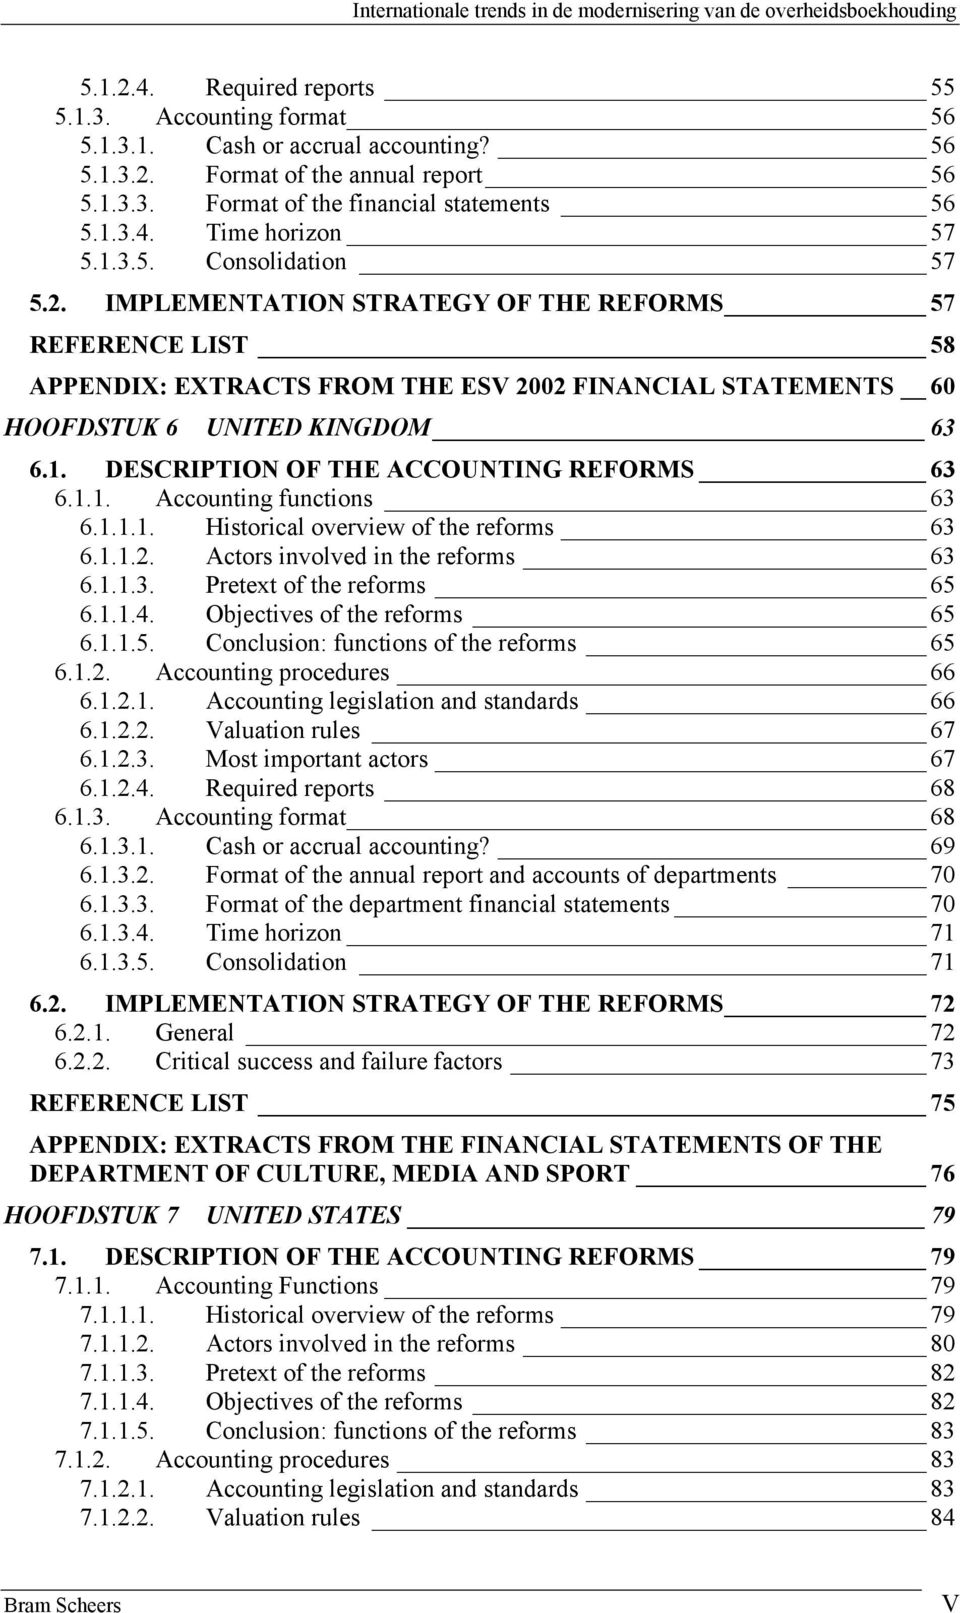 IMPLEMENTATION STRATEGY OF THE REFORMS 57 REFERENCE LIST 58 APPENDIX: EXTRACTS FROM THE ESV 2002 FINANCIAL STATEMENTS 60 HOOFDSTUK 6 UNITED KINGDOM 63 6.1. DESCRIPTION OF THE ACCOUNTING REFORMS 63 6.